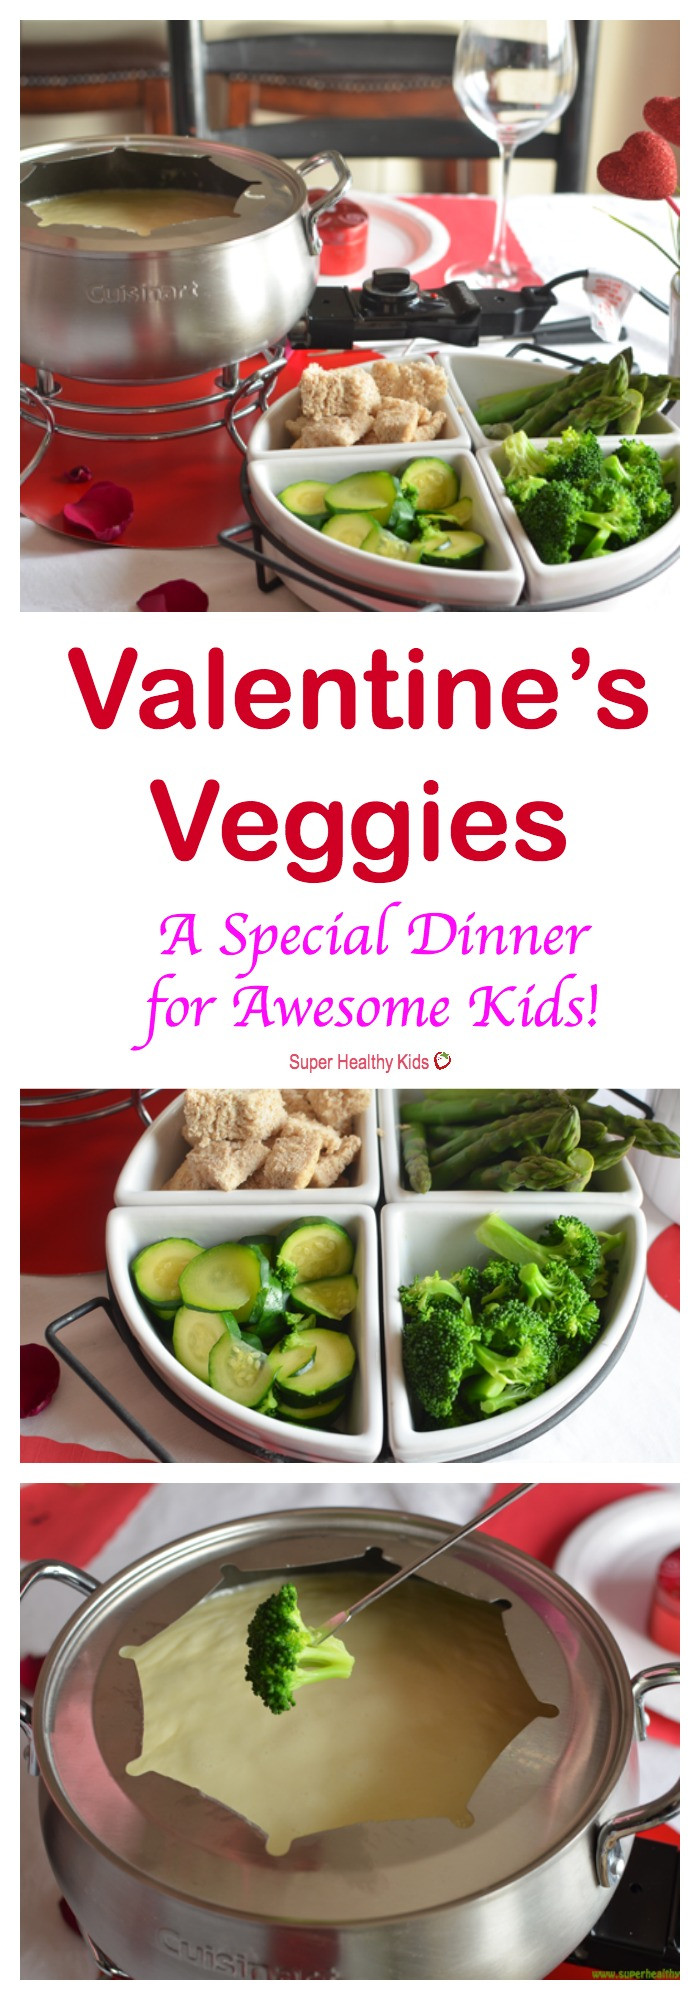 Valentines Dinner For Kids  Valentine s Veggies Special Dinner for Awesome Kids